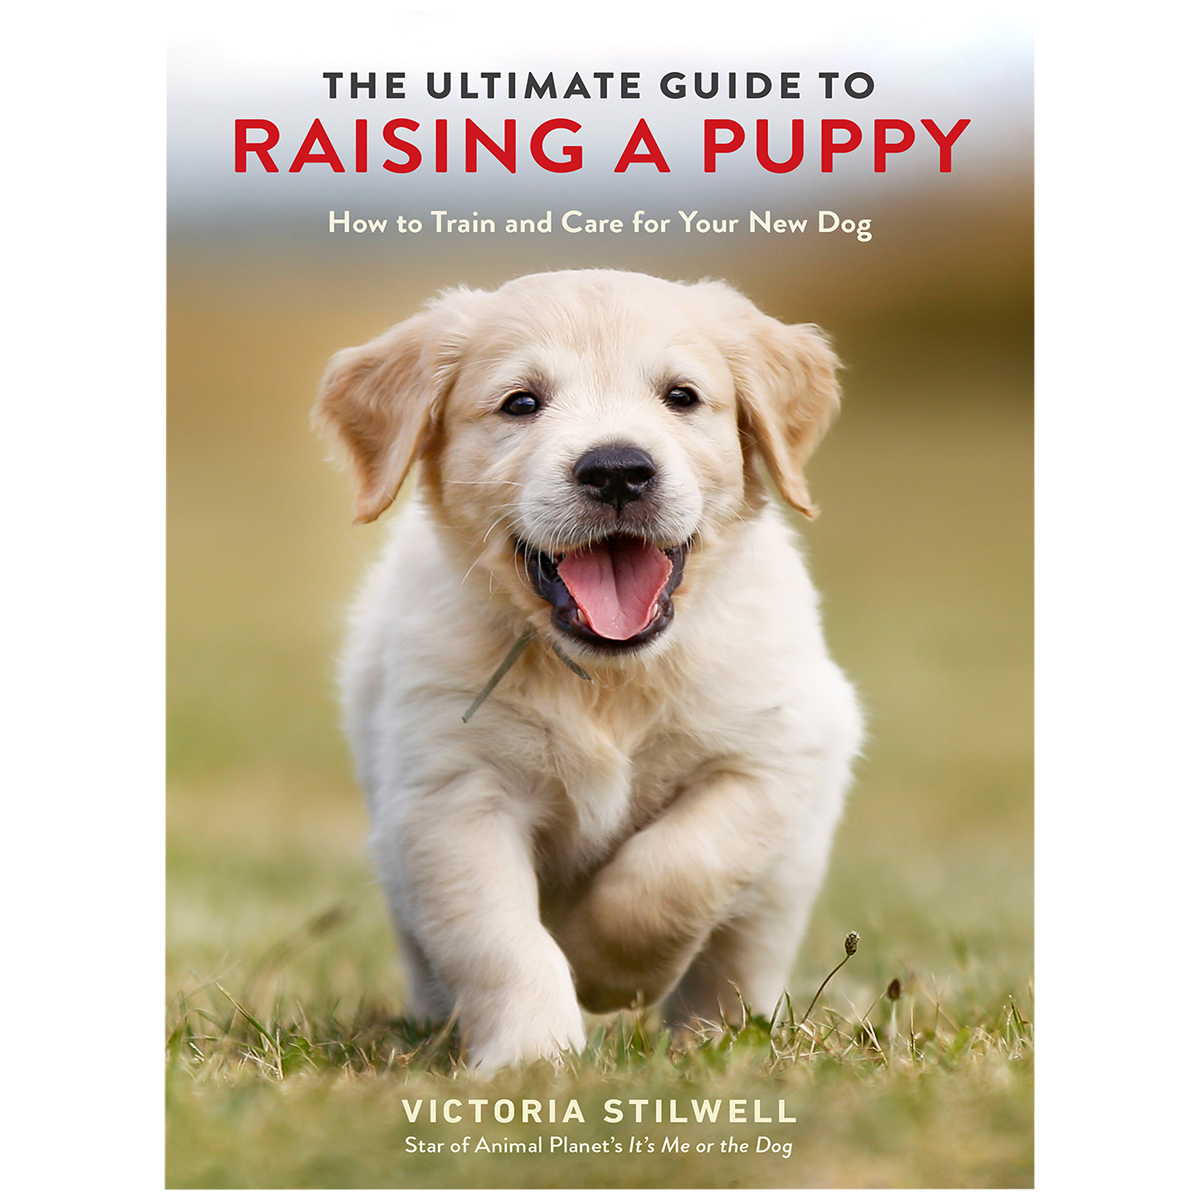 The Ultimate Guide to Raising a Puppy: How to Train and Care for your New Dog by Victoria Stilwell